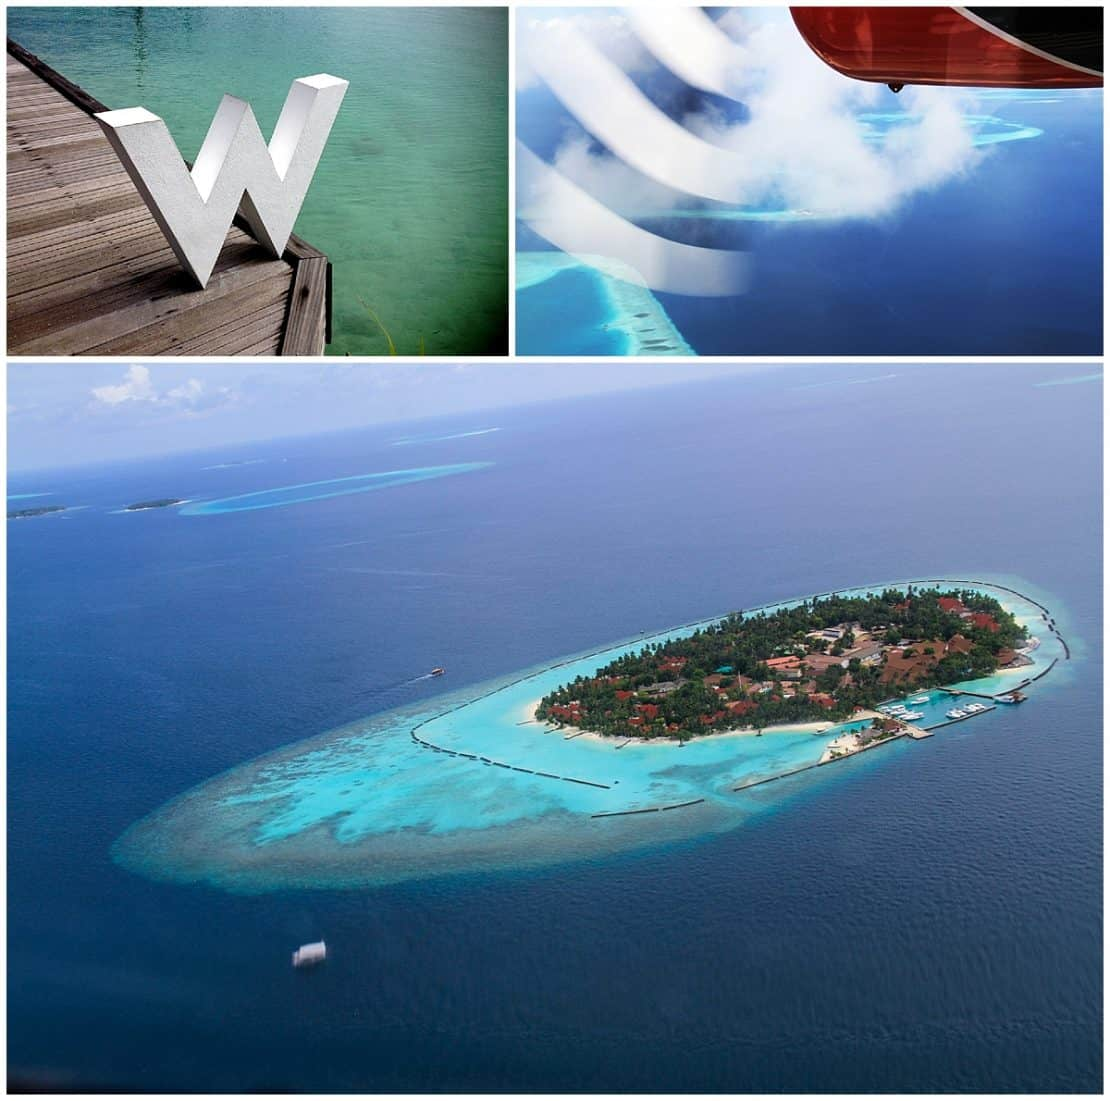 W Hotel Maldives Islands